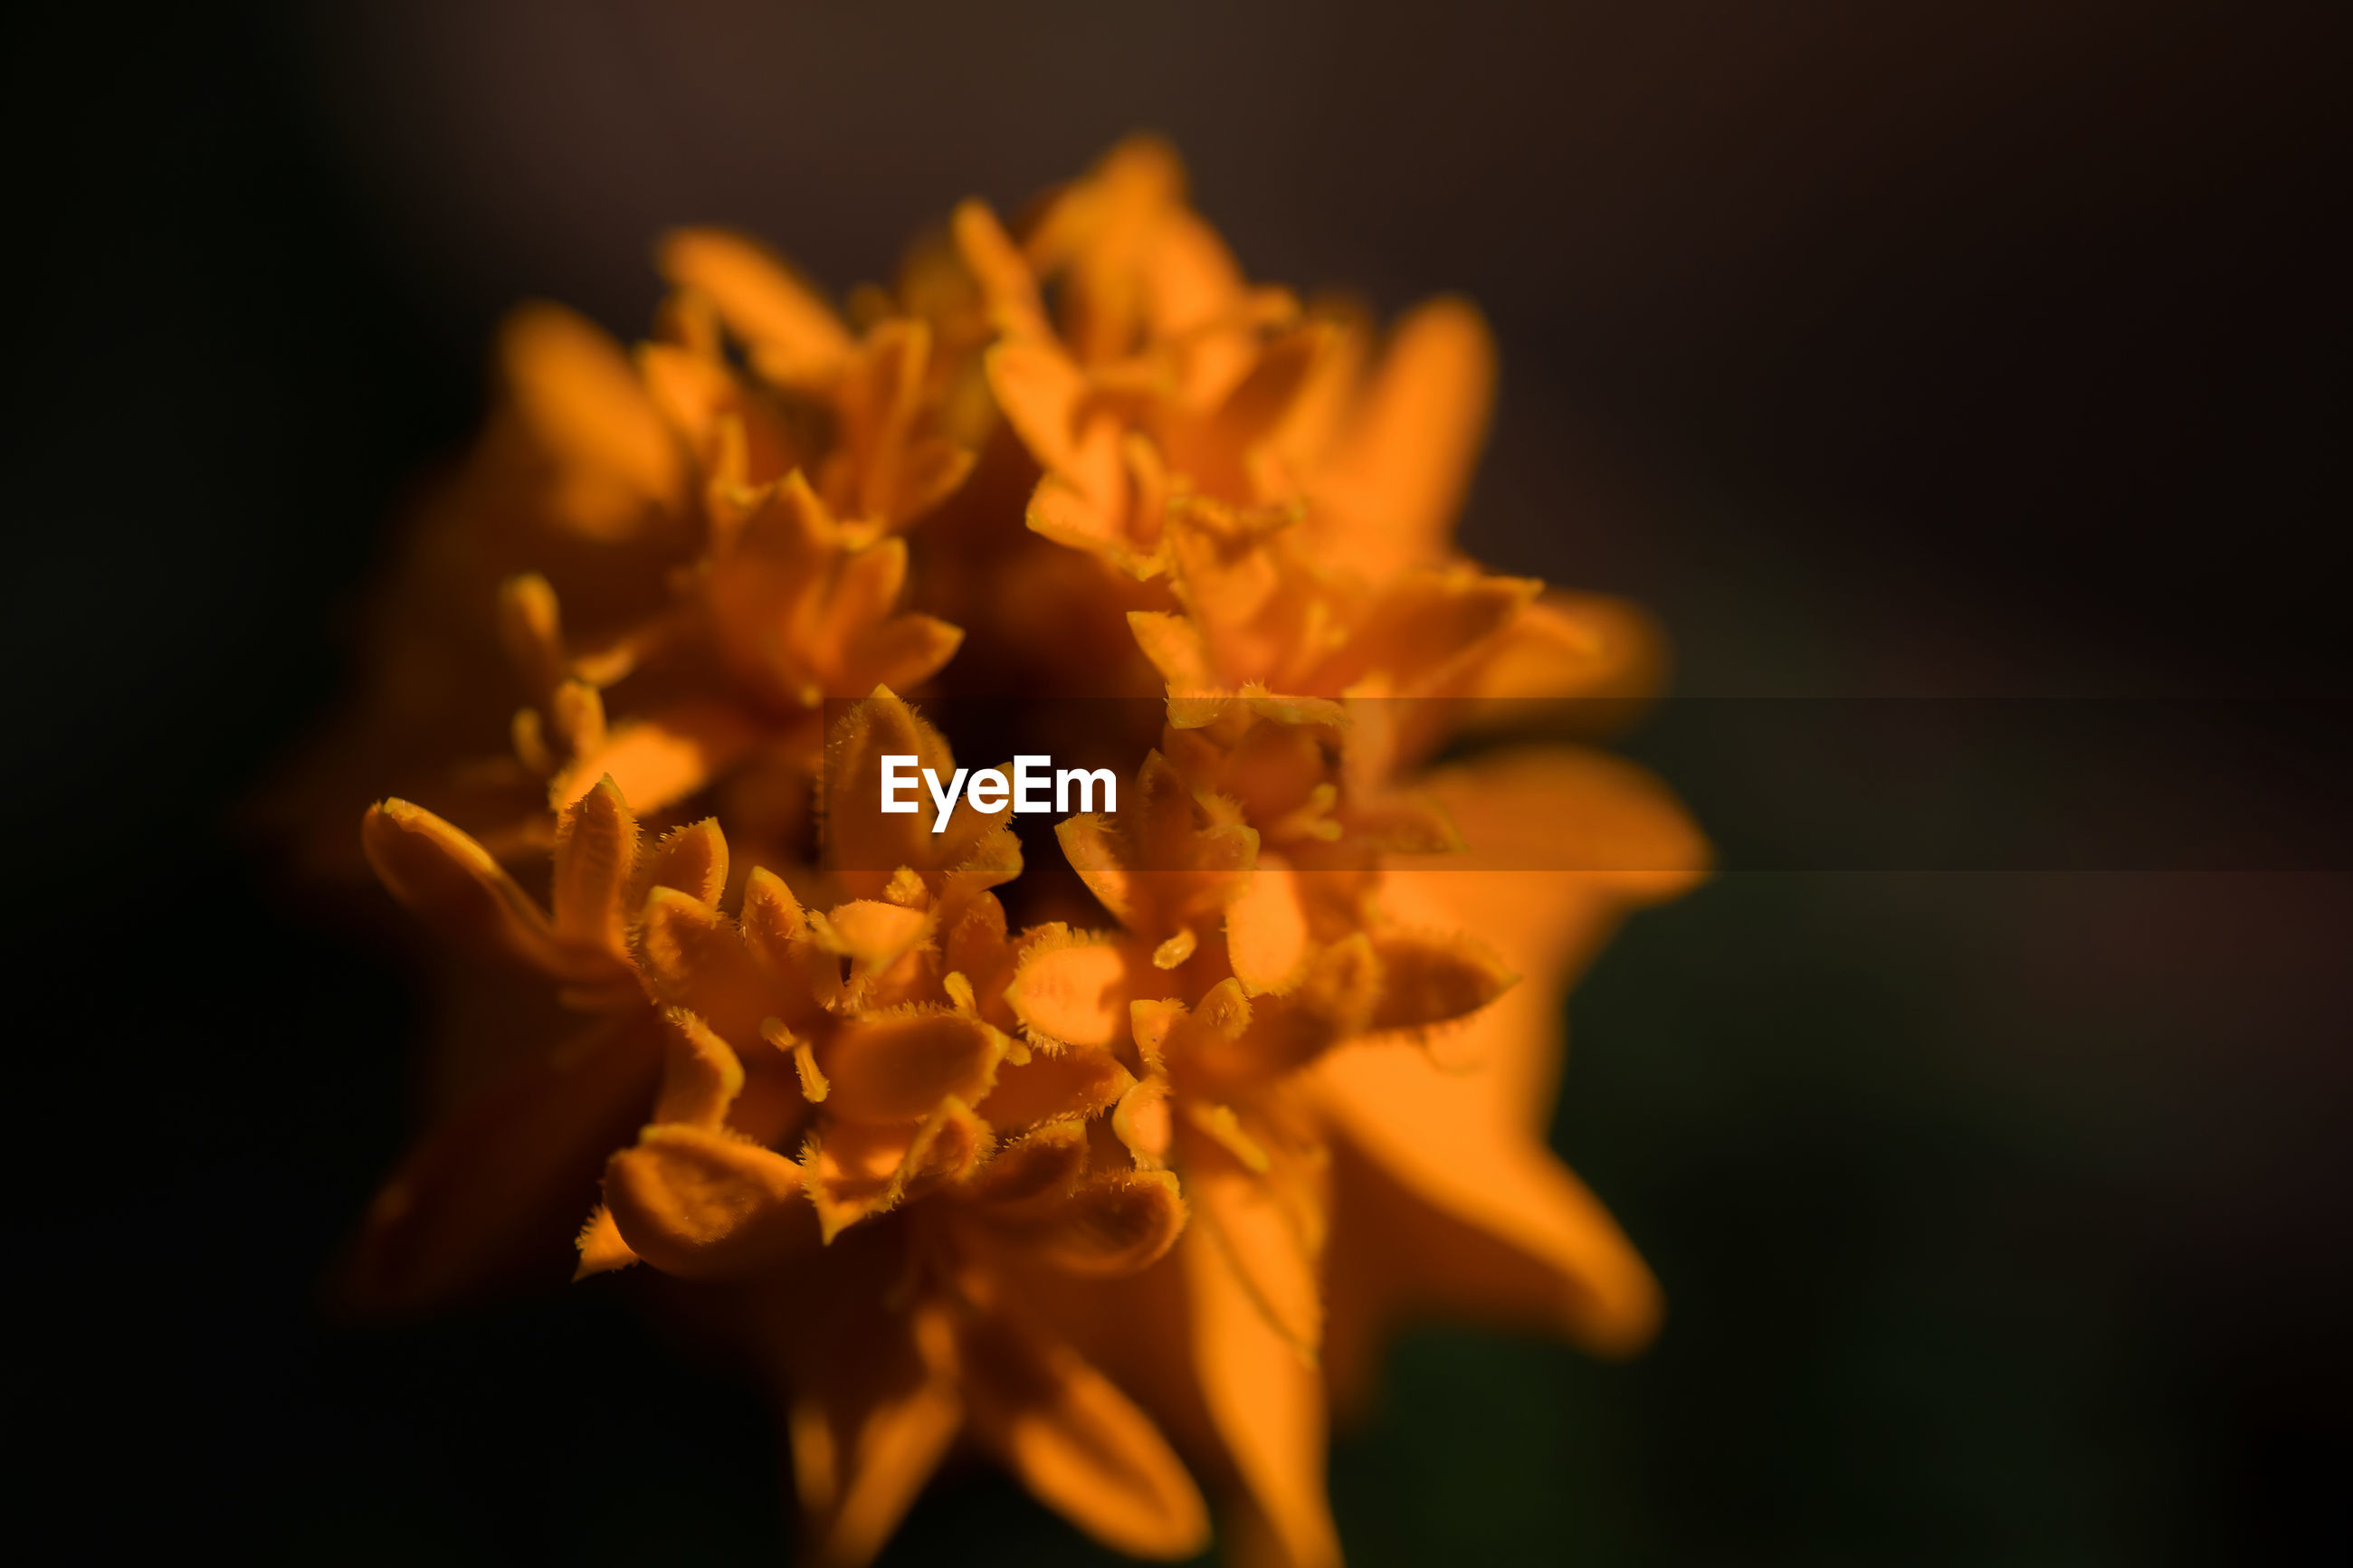 CLOSE-UP OF YELLOW FLOWER ON BLACK BACKGROUND